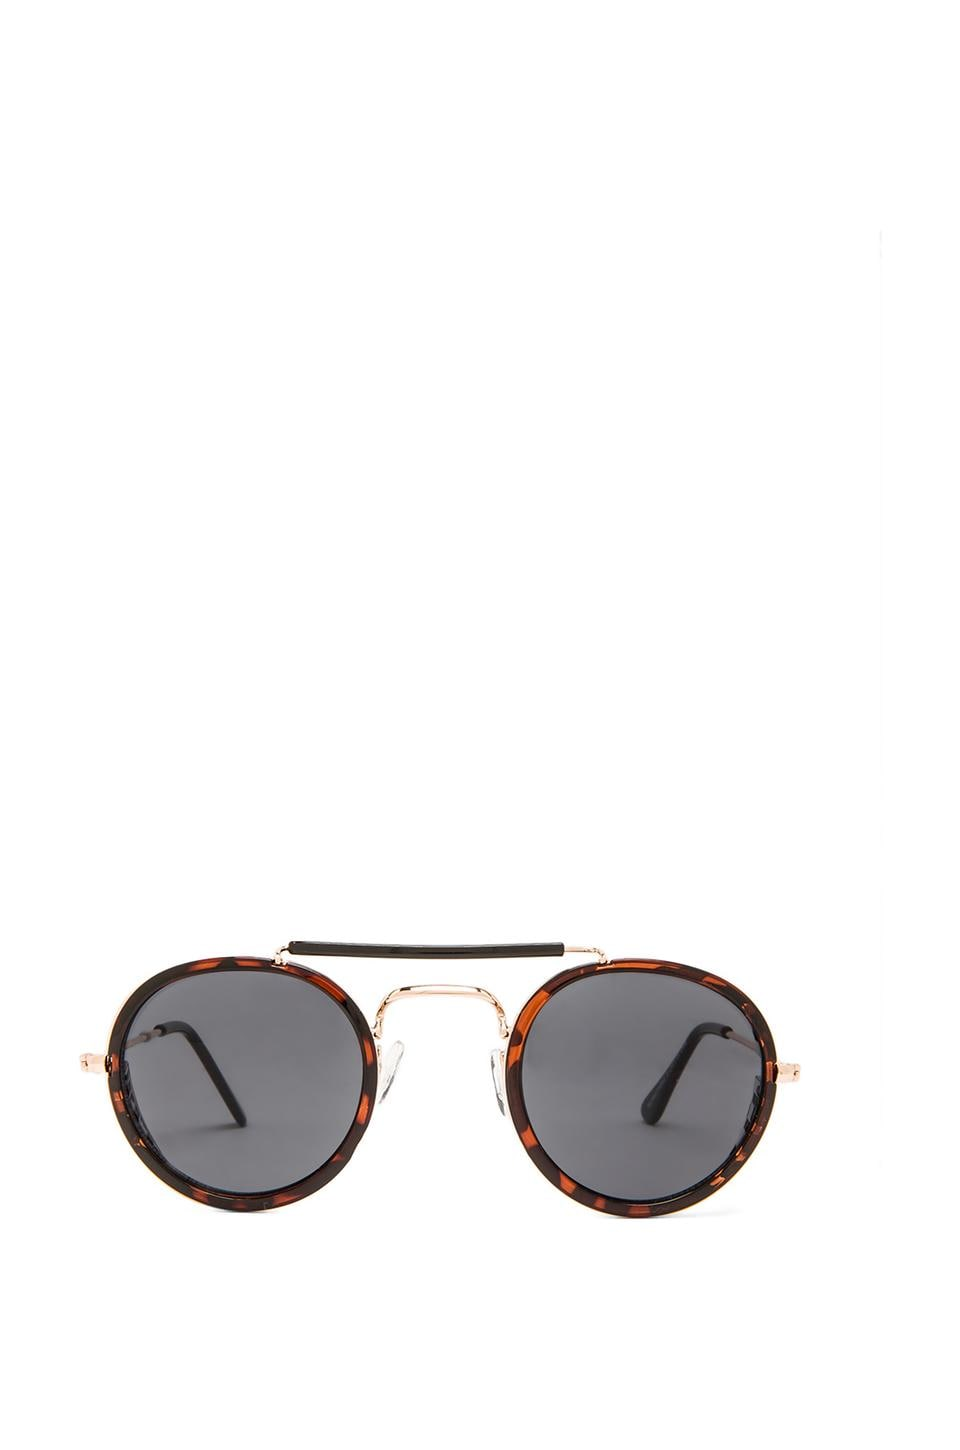 Spitfire Technotronic 5 in Tortoise & Black